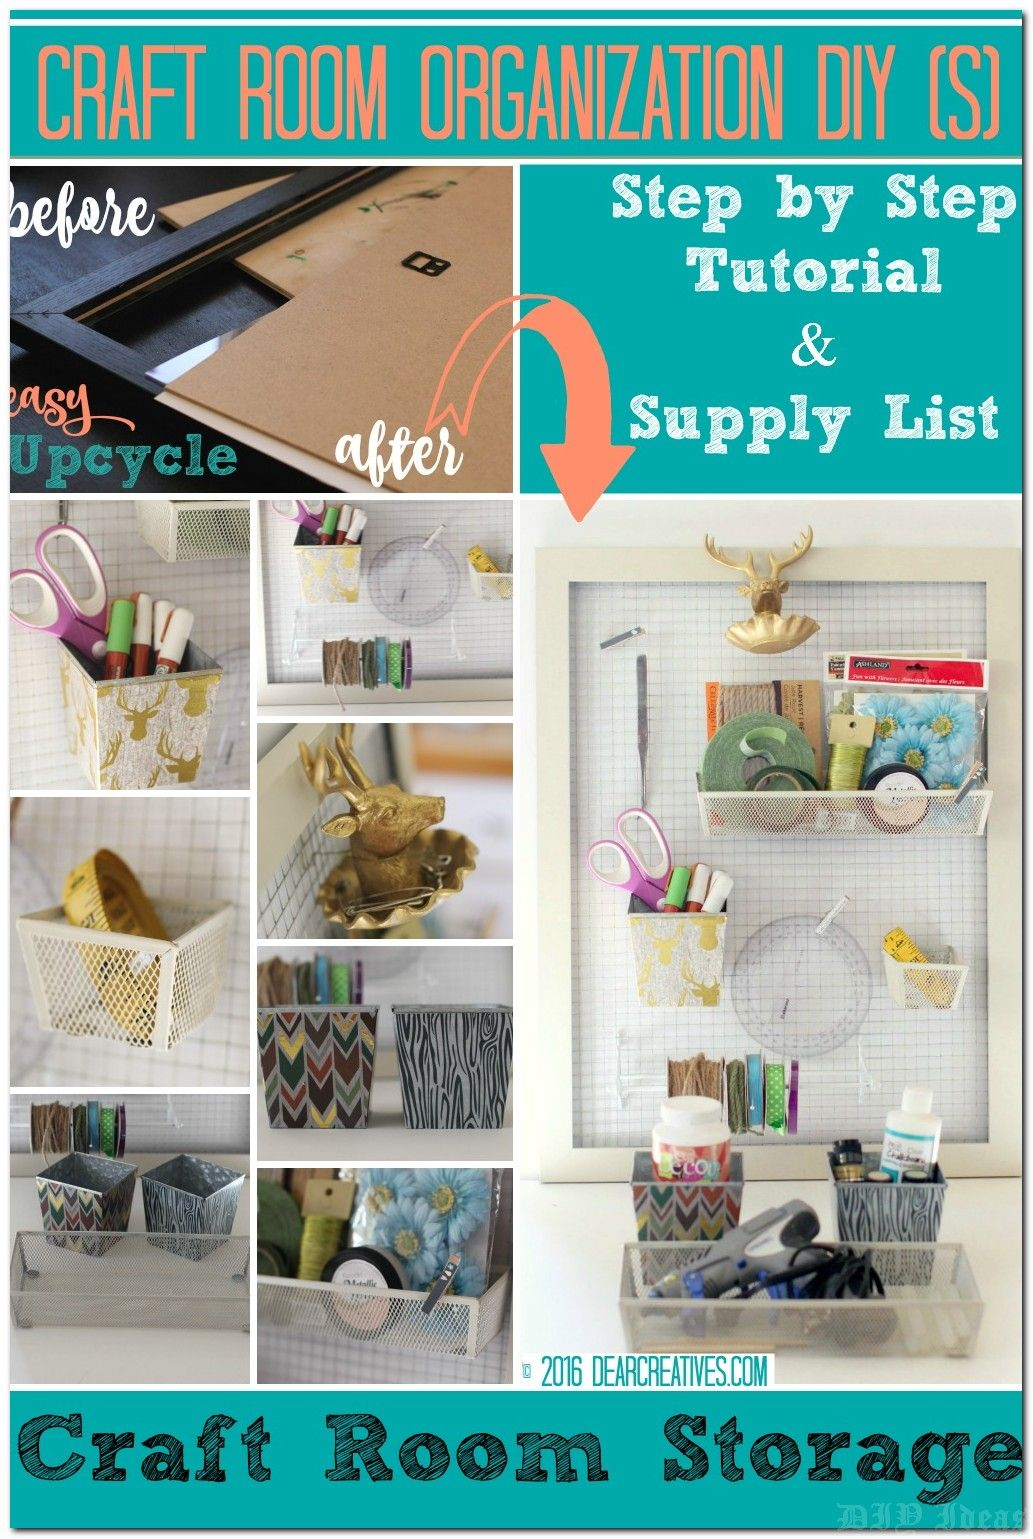 The Ultimate Guide To DIY and Crafts